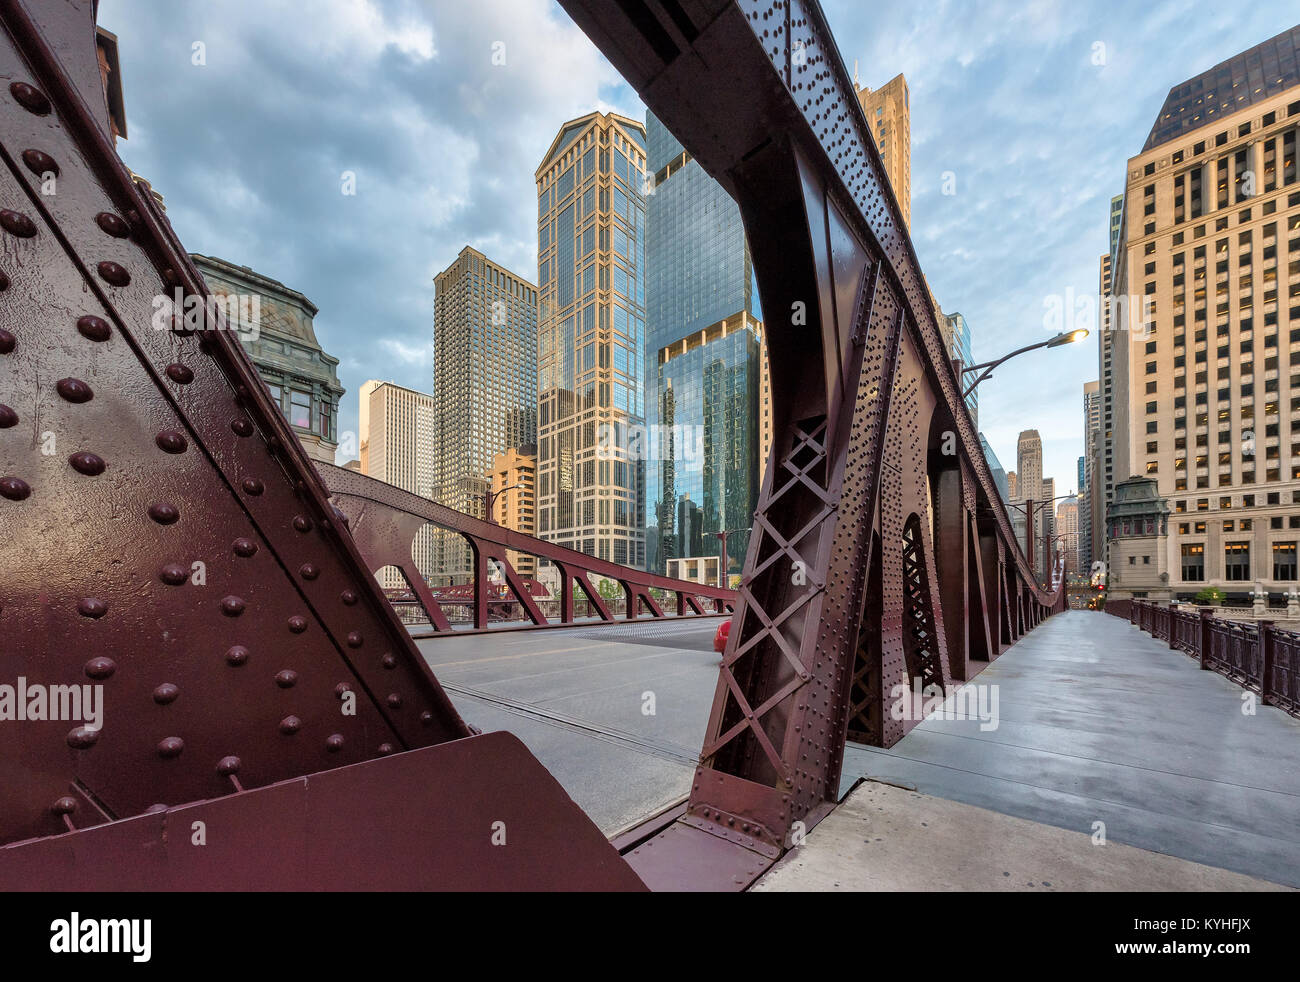 Bridge in downtown of Chicago - Stock Image